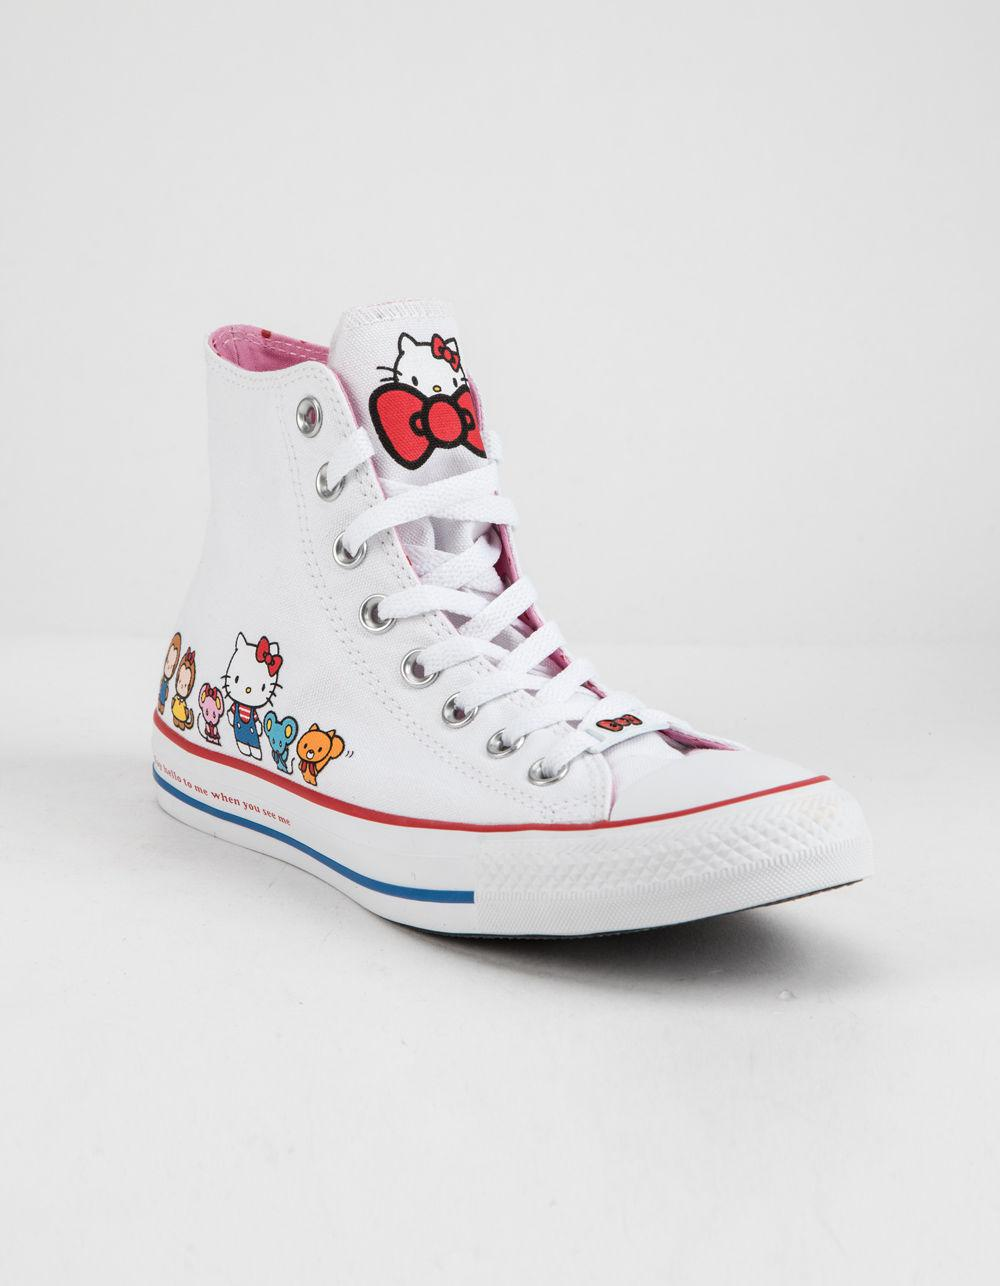 5f13593a928c Lyst - Converse X Hello Kitty Chuck Taylor All Star White   Prism ...